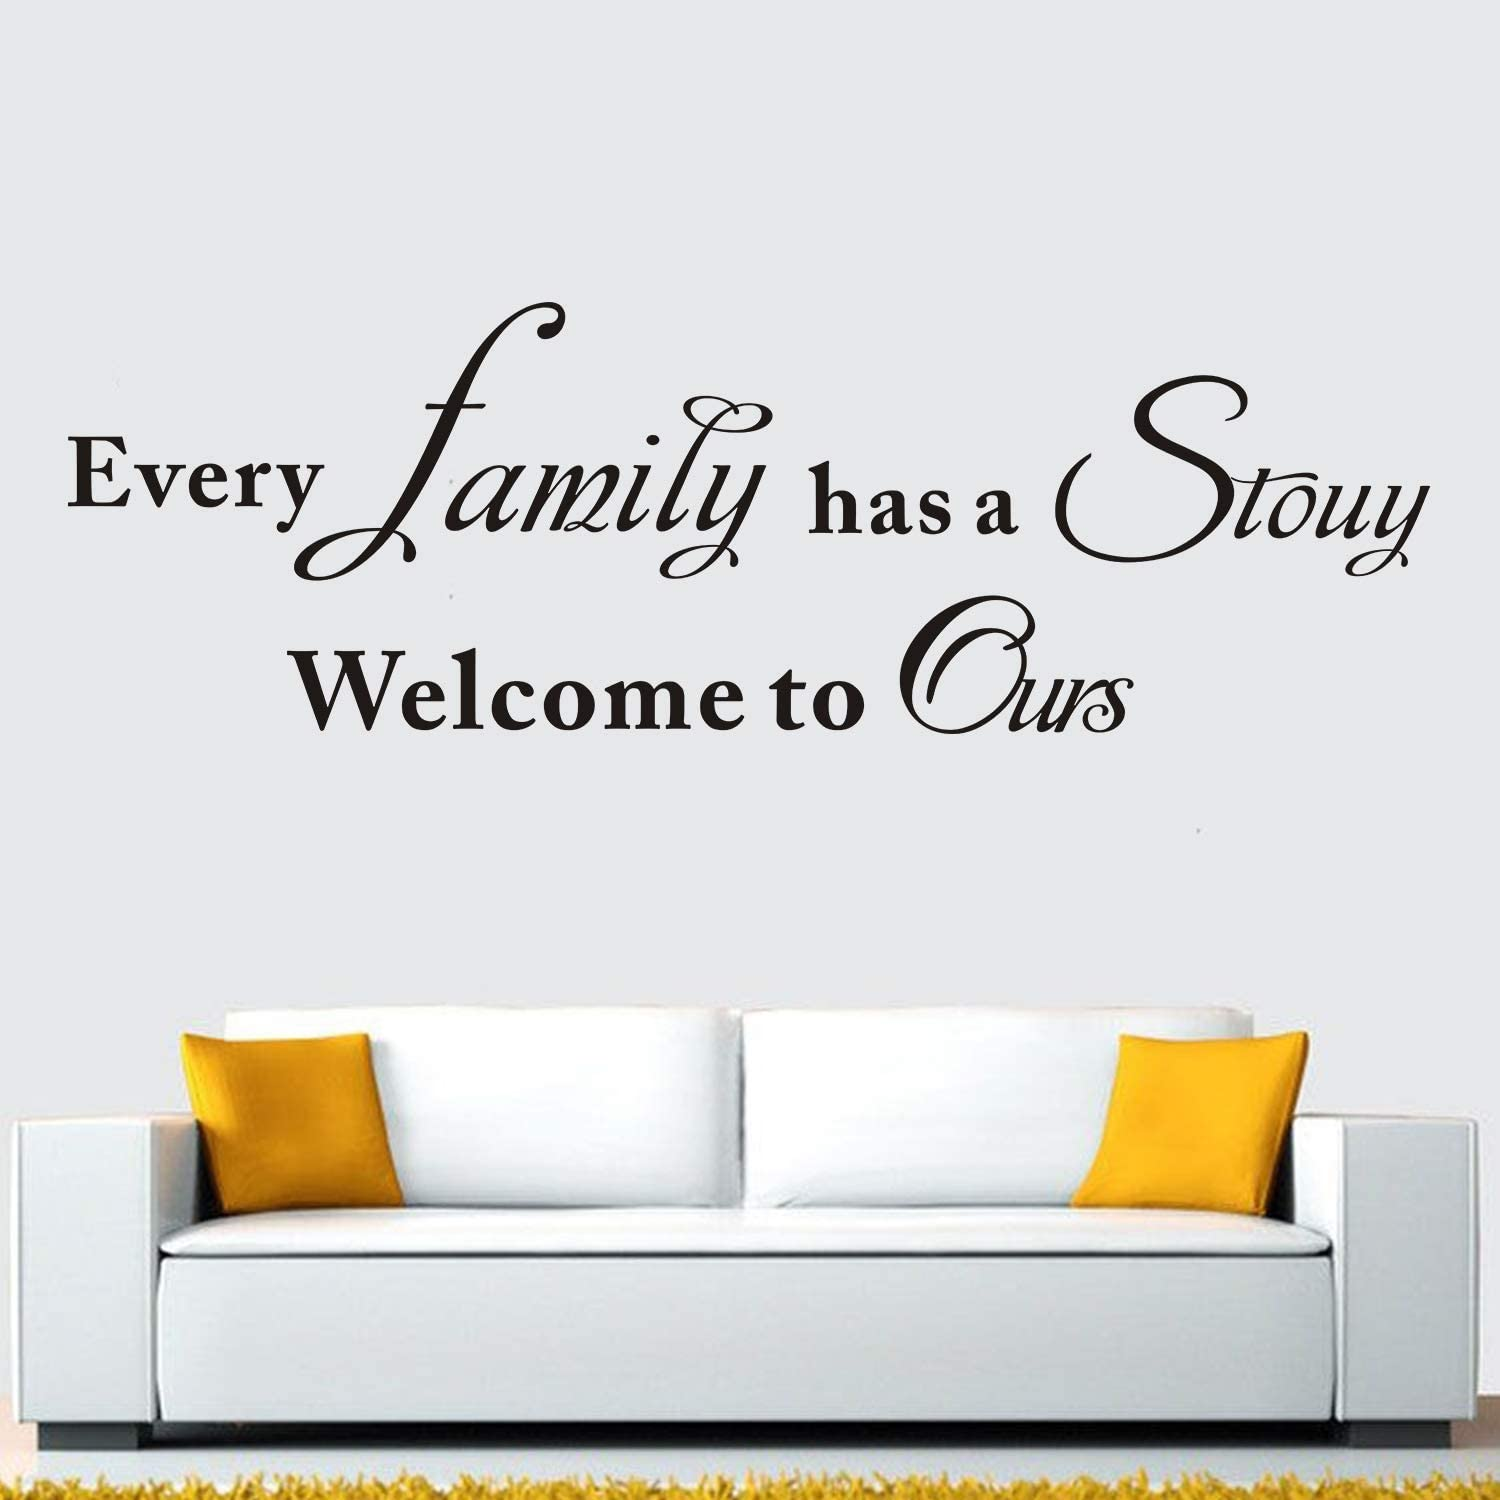 "AnFigure Wall Decals Quotes, Family Wall Decals, Living Room Inspirational Home Love Bedroom Women Life Lettering Sayings Art Decor Vinyl Stickers Every Family Has a Story Welcome to Ours 24""x7.6"""